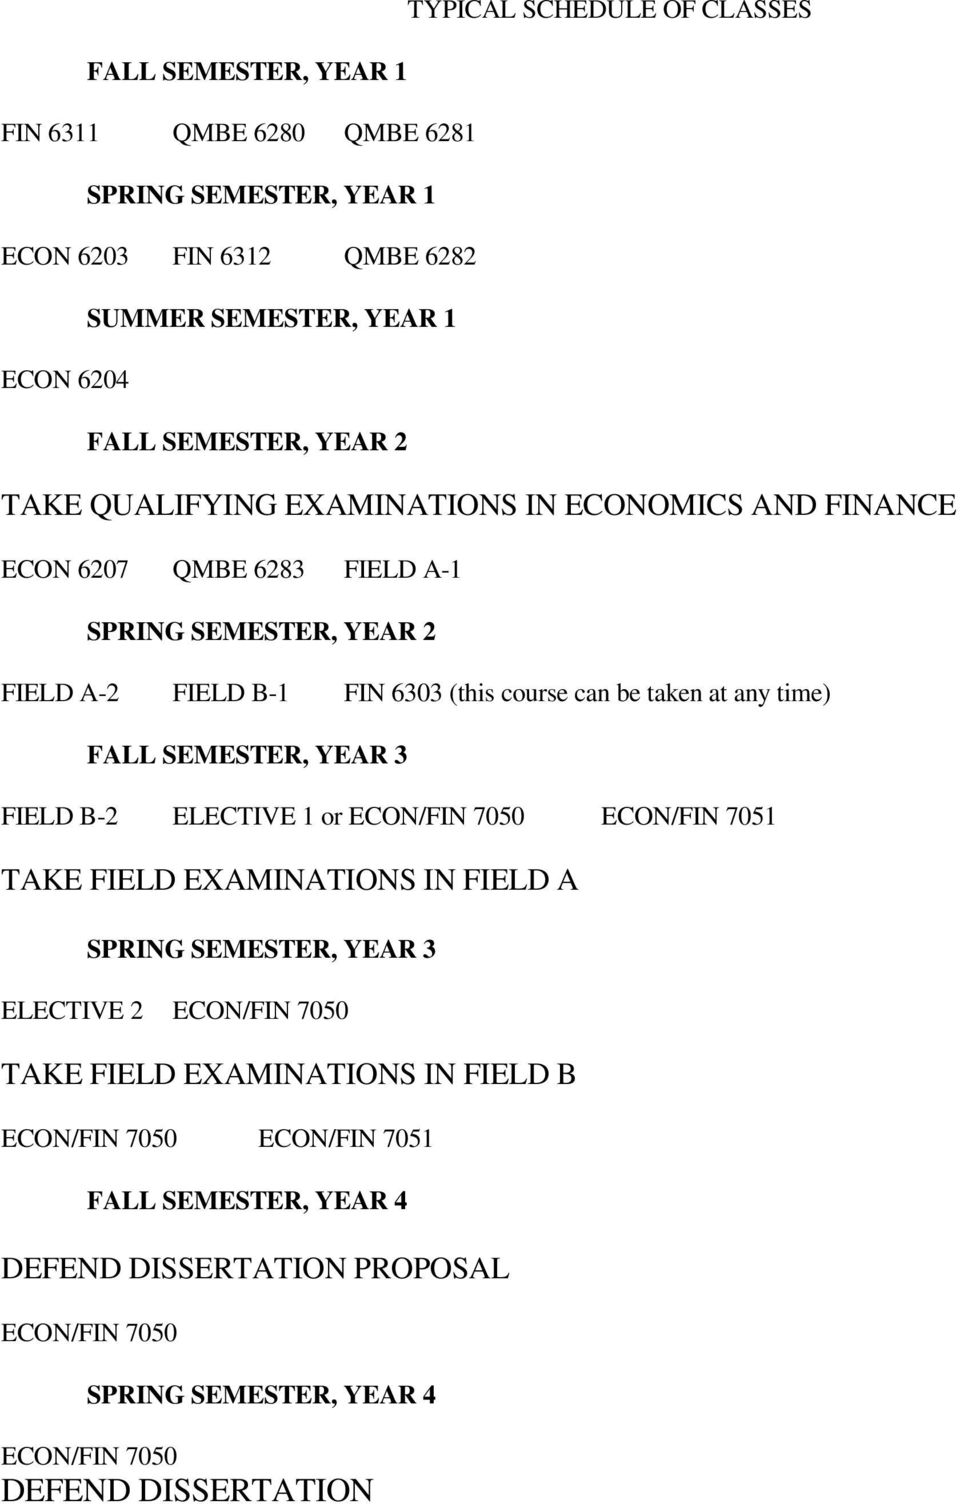 any time) FALL SEMESTER, YEAR 3 FIELD B-2 ELECTIVE 1 or ECON/FIN 7050 ECON/FIN 7051 TAKE FIELD EXAMINATIONS IN FIELD A SPRING SEMESTER, YEAR 3 ELECTIVE 2 ECON/FIN 7050 TAKE